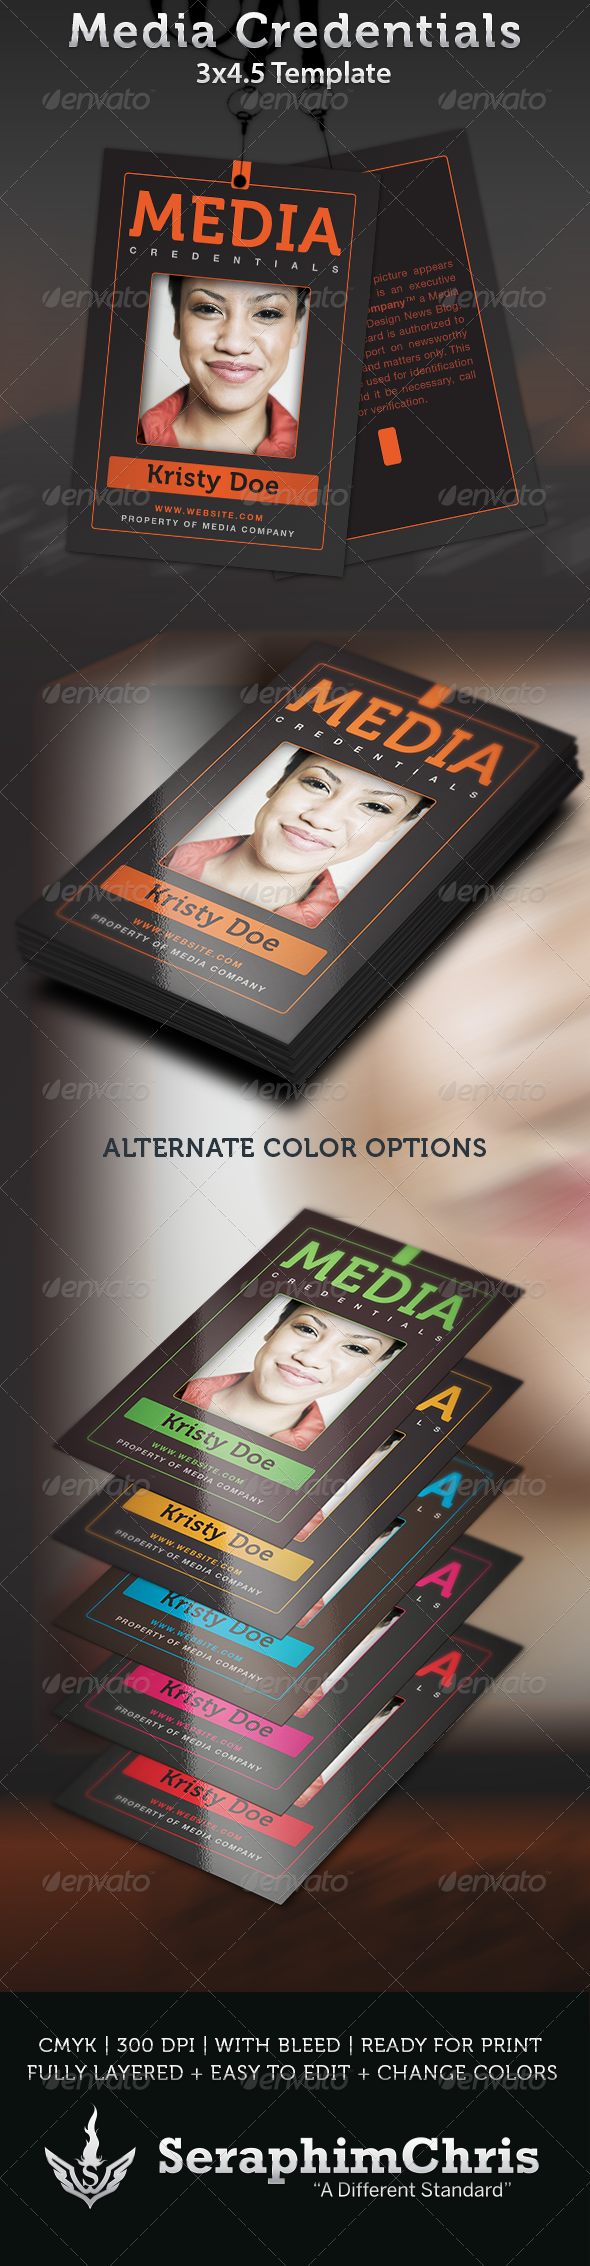 Media Credentials Template | Template, Print templates and Yearbooks